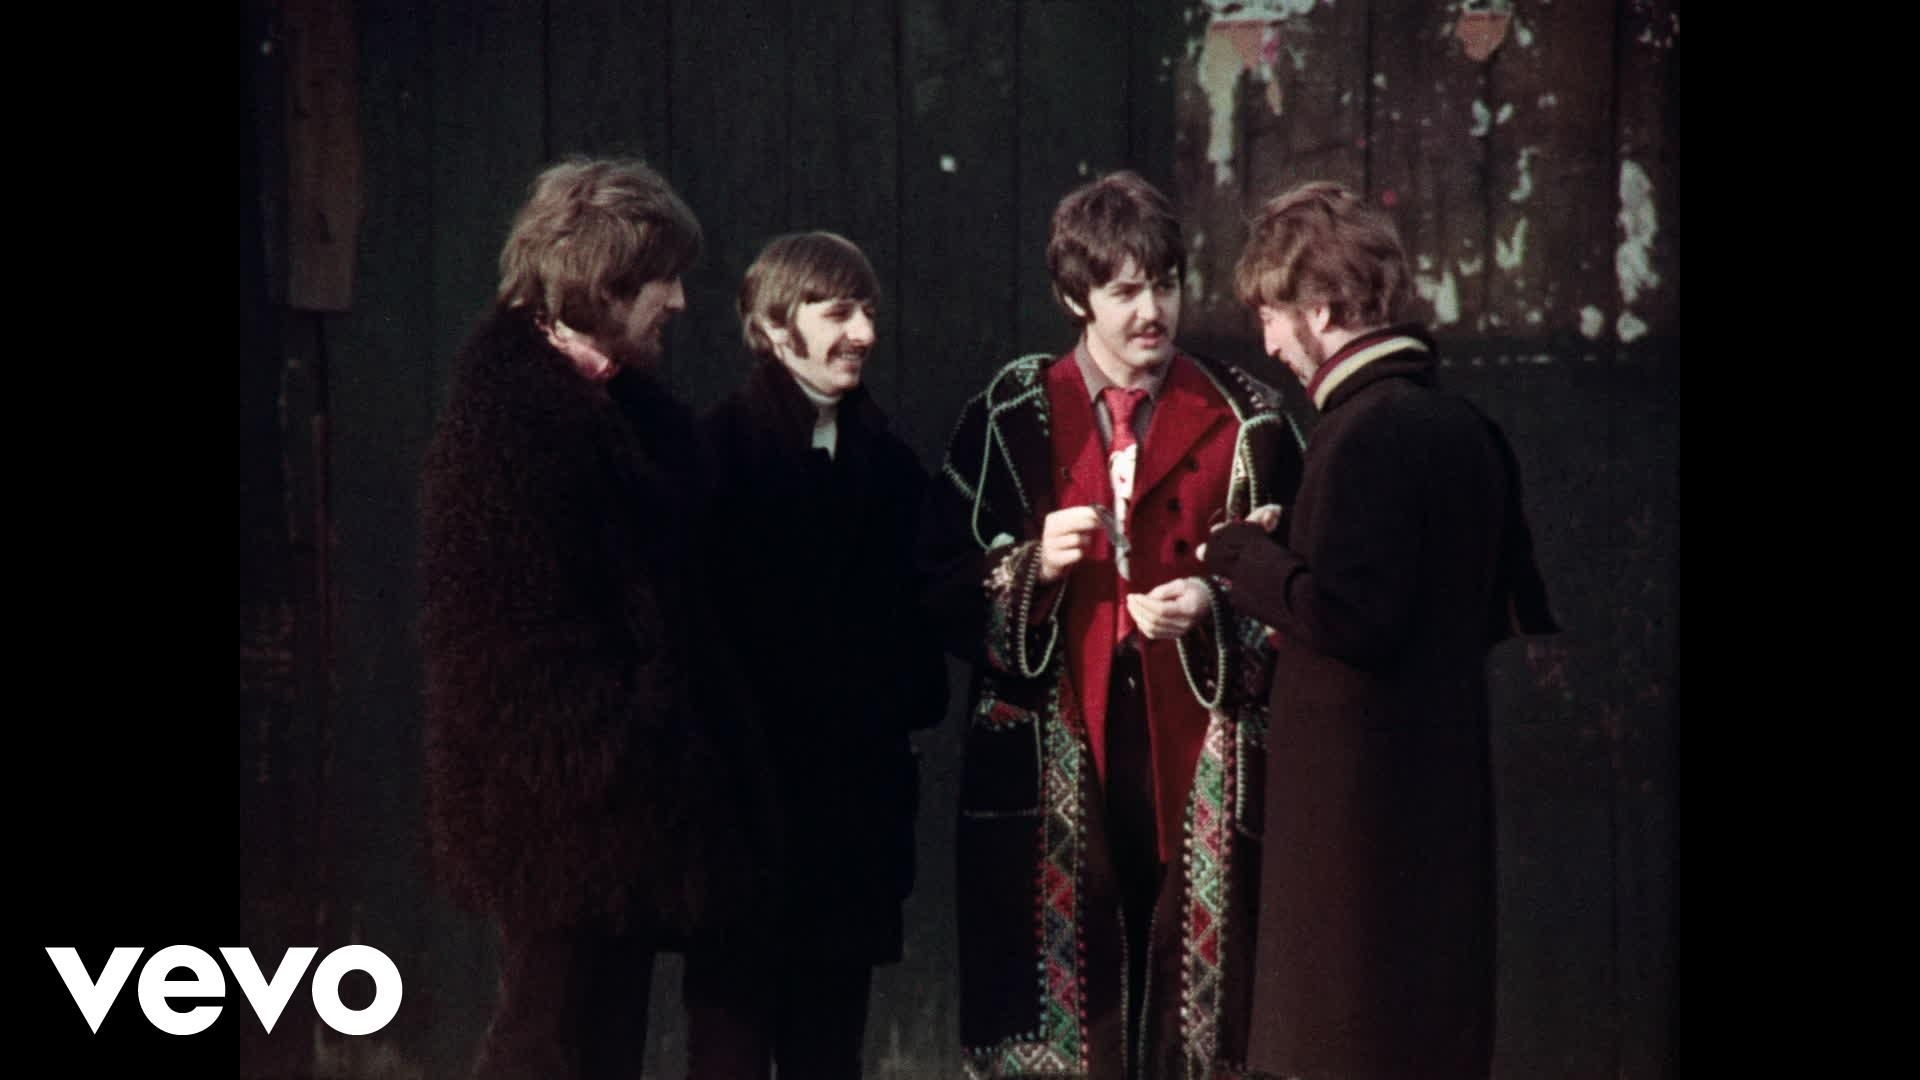 The Beatles 1 Video Collection is Out Now. Get your copy here: http://thebeatles1.lnk.to/DeluxeBluRay Two days after recording some overdubs for 'A Day In Th...